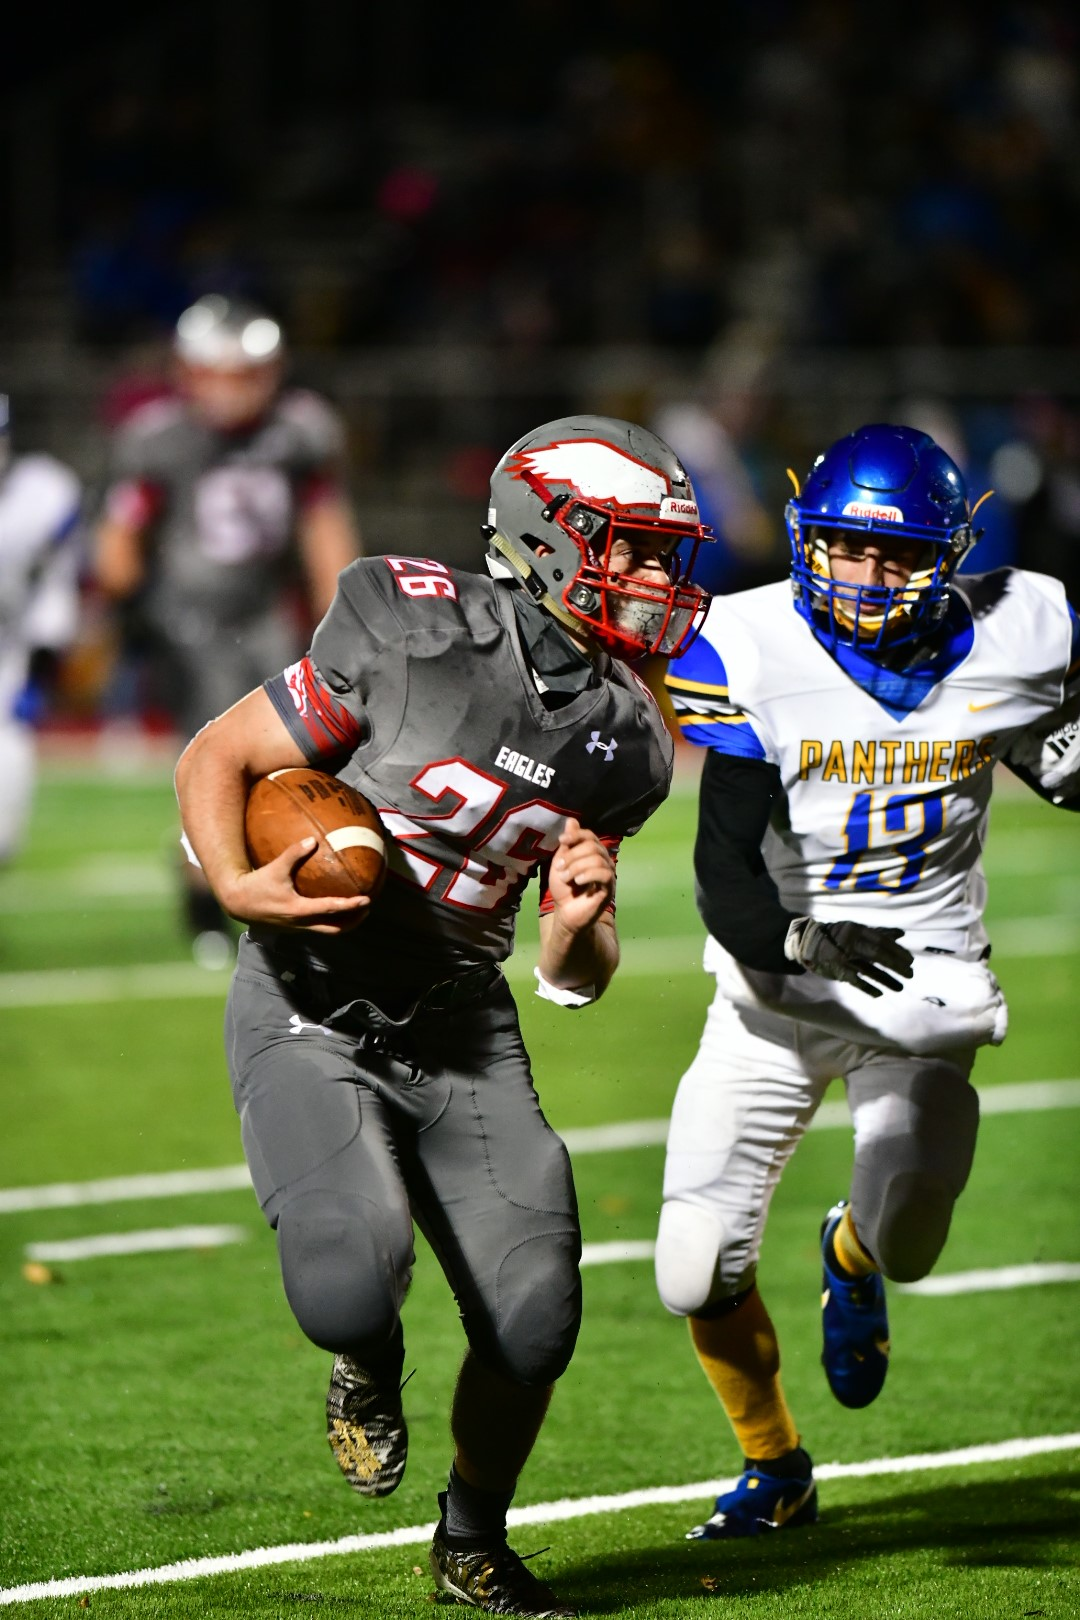 Frankenmuth offense goes into high gear in win over Corunna